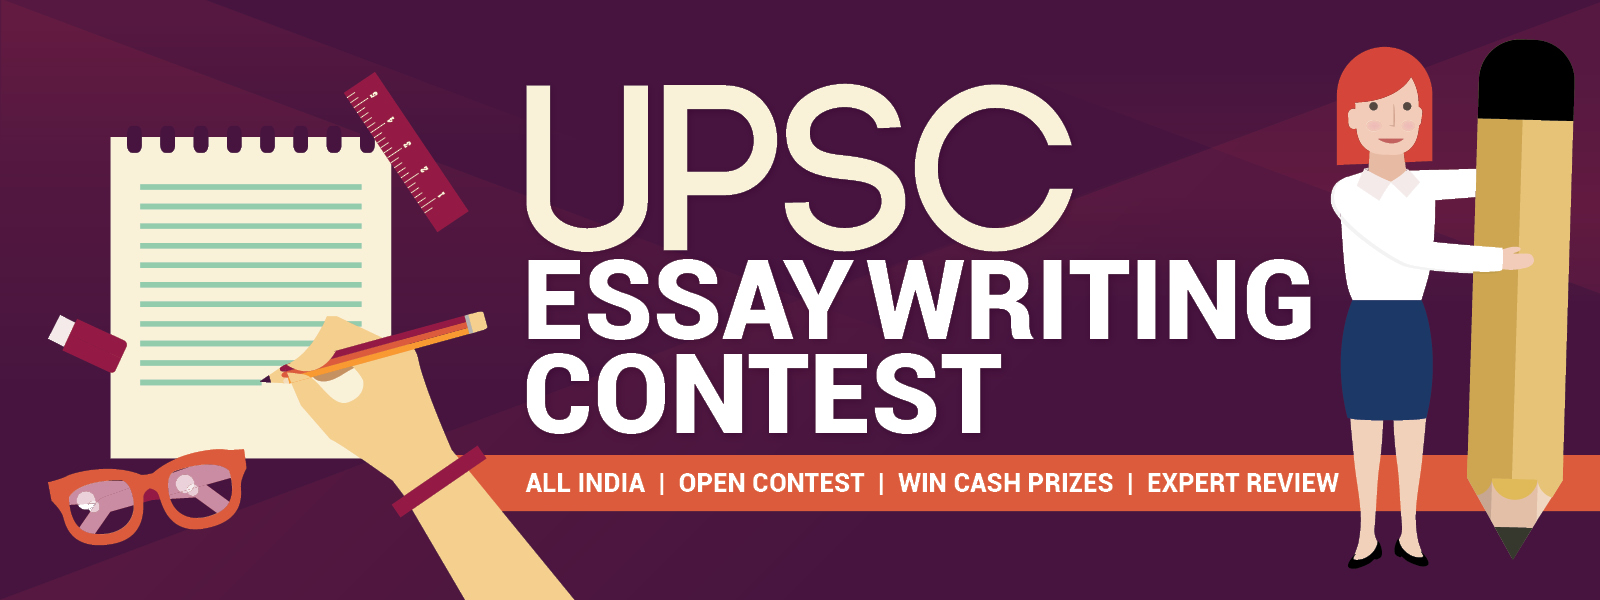 UPSC Civil Services IAS Essay Writing Contest